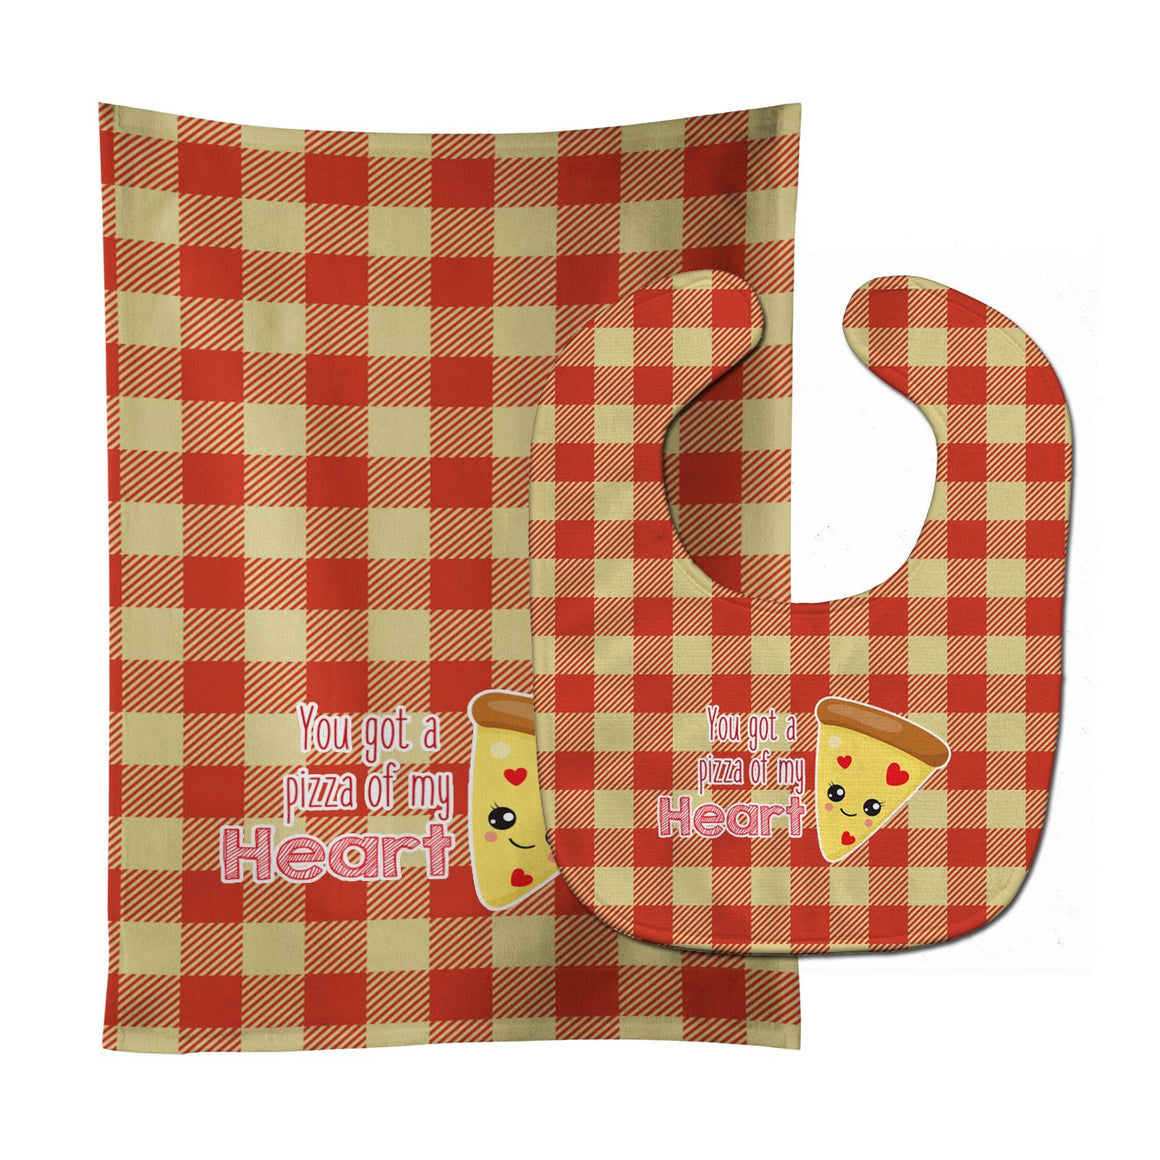 Buy this You got a Pizza of my Heart Baby Bib & Burp Cloth BB9128STBU